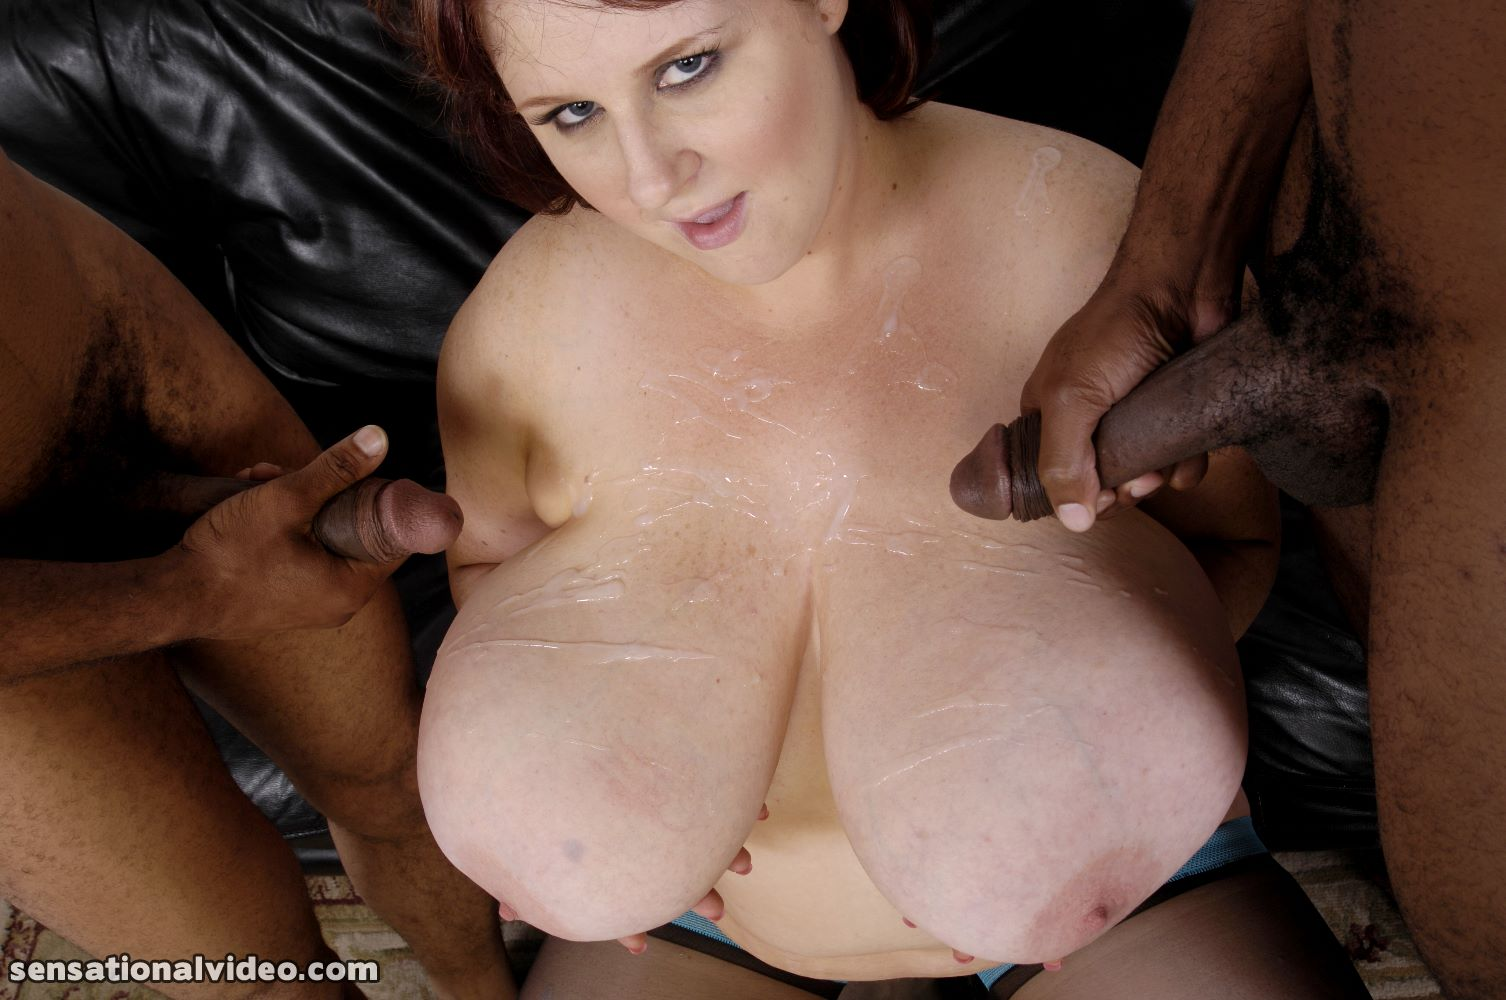 Bbw Cum Covered Tits - Free Porn Videos - YouPorn